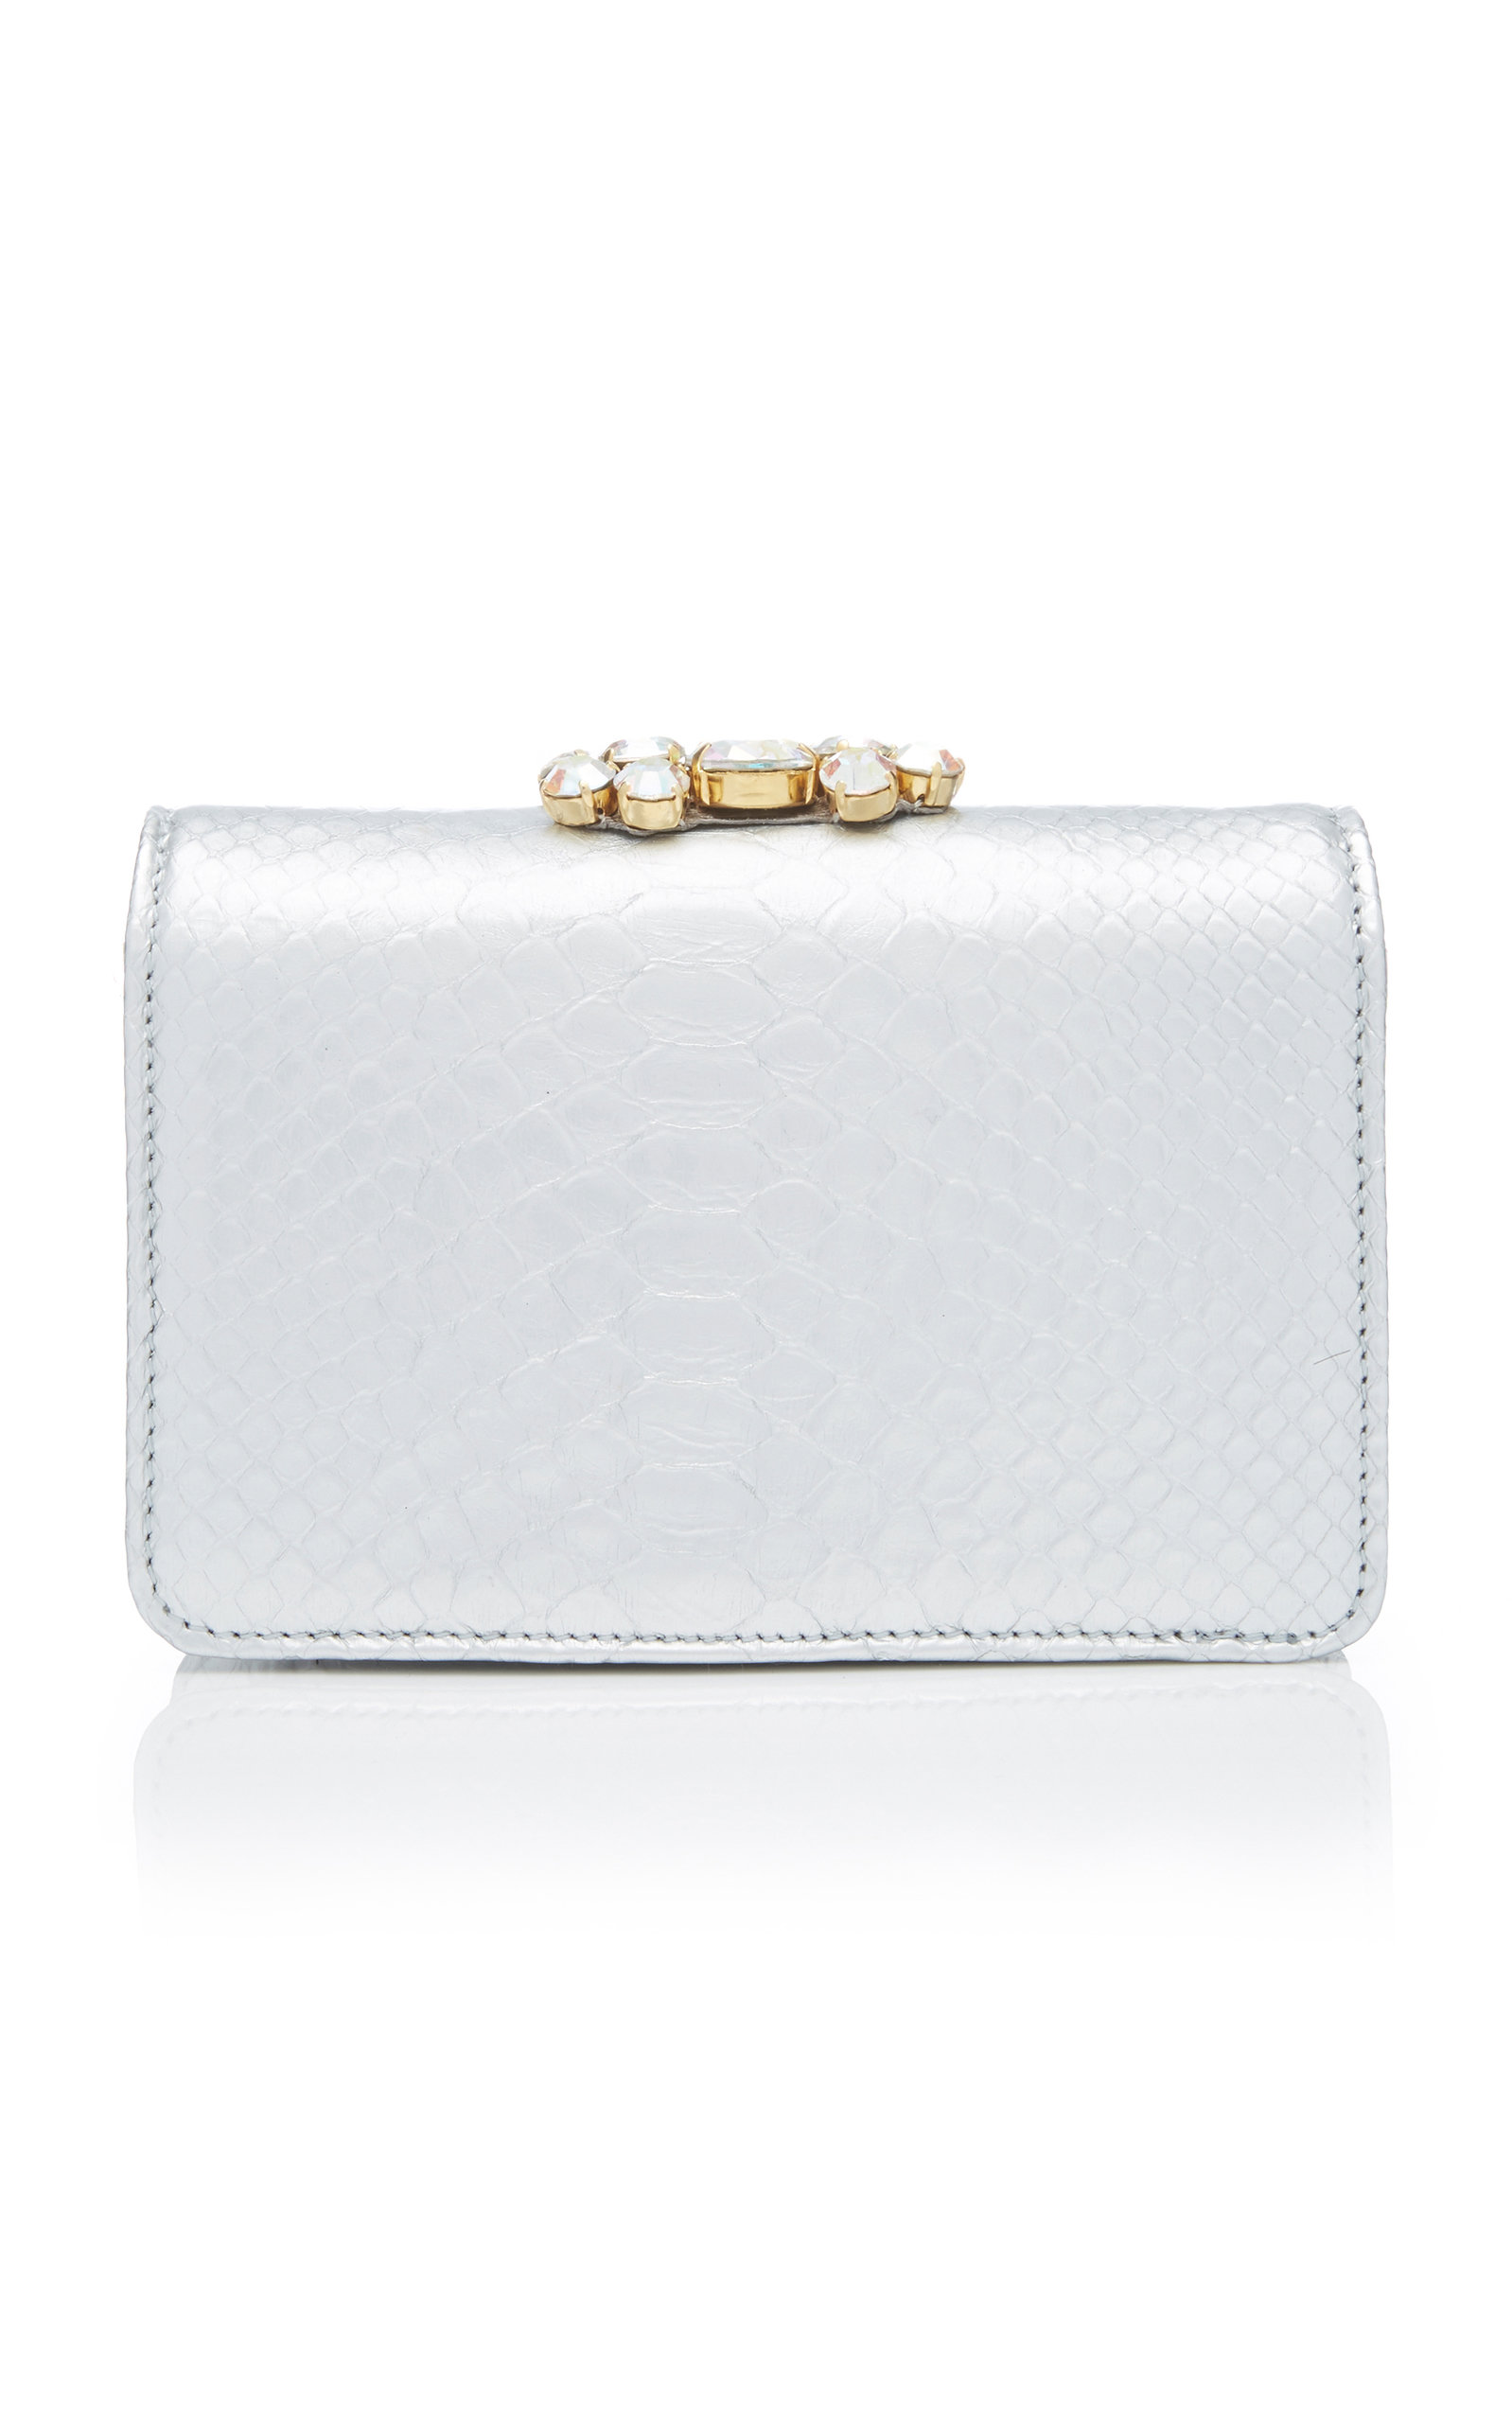 Mini Clicky Python Clutch with Crystals